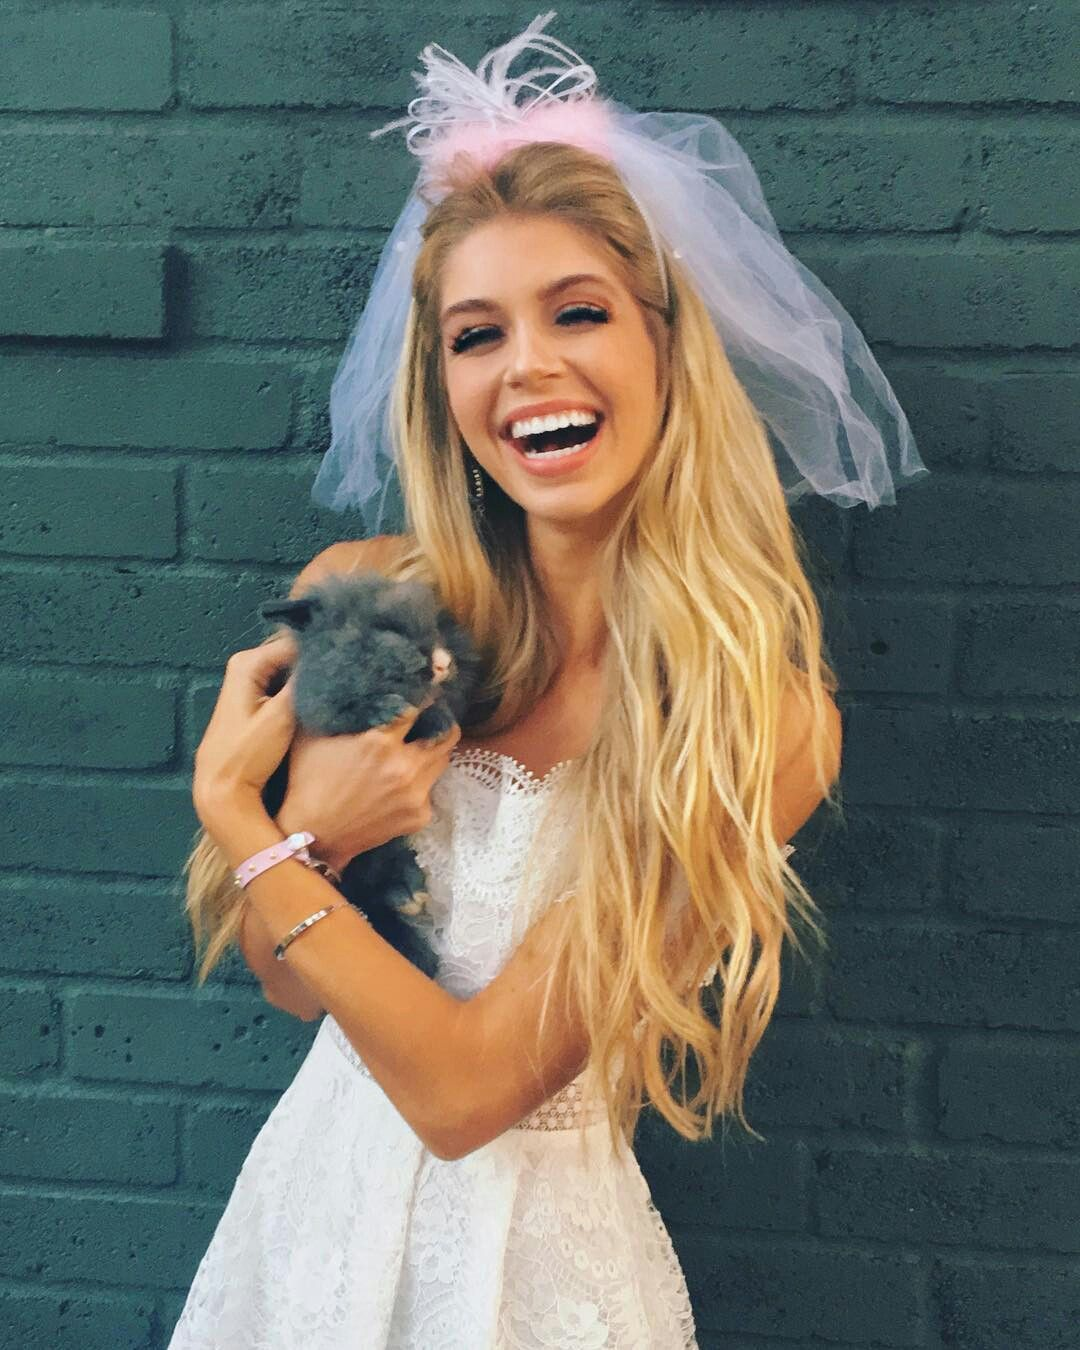 Allie DeBerry nudes (22 photos), Ass, Is a cute, Boobs, braless 2017